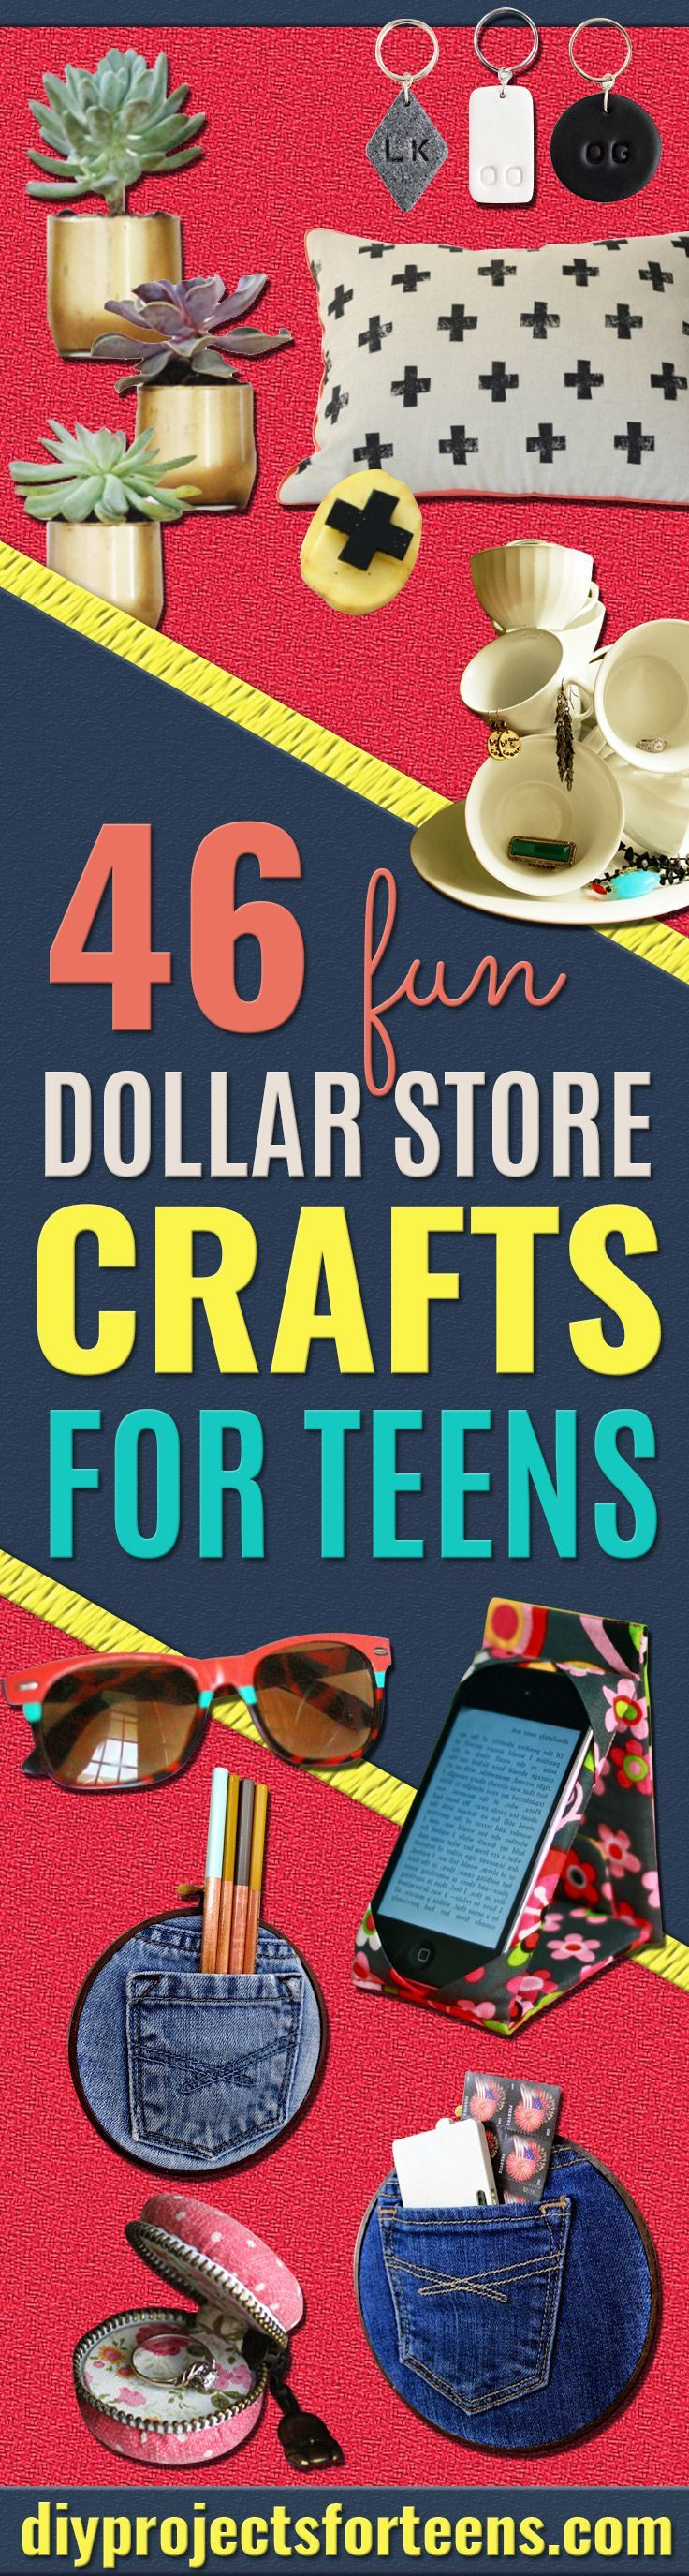 17 best images about diy for teens on pinterest diy for Dollar store art